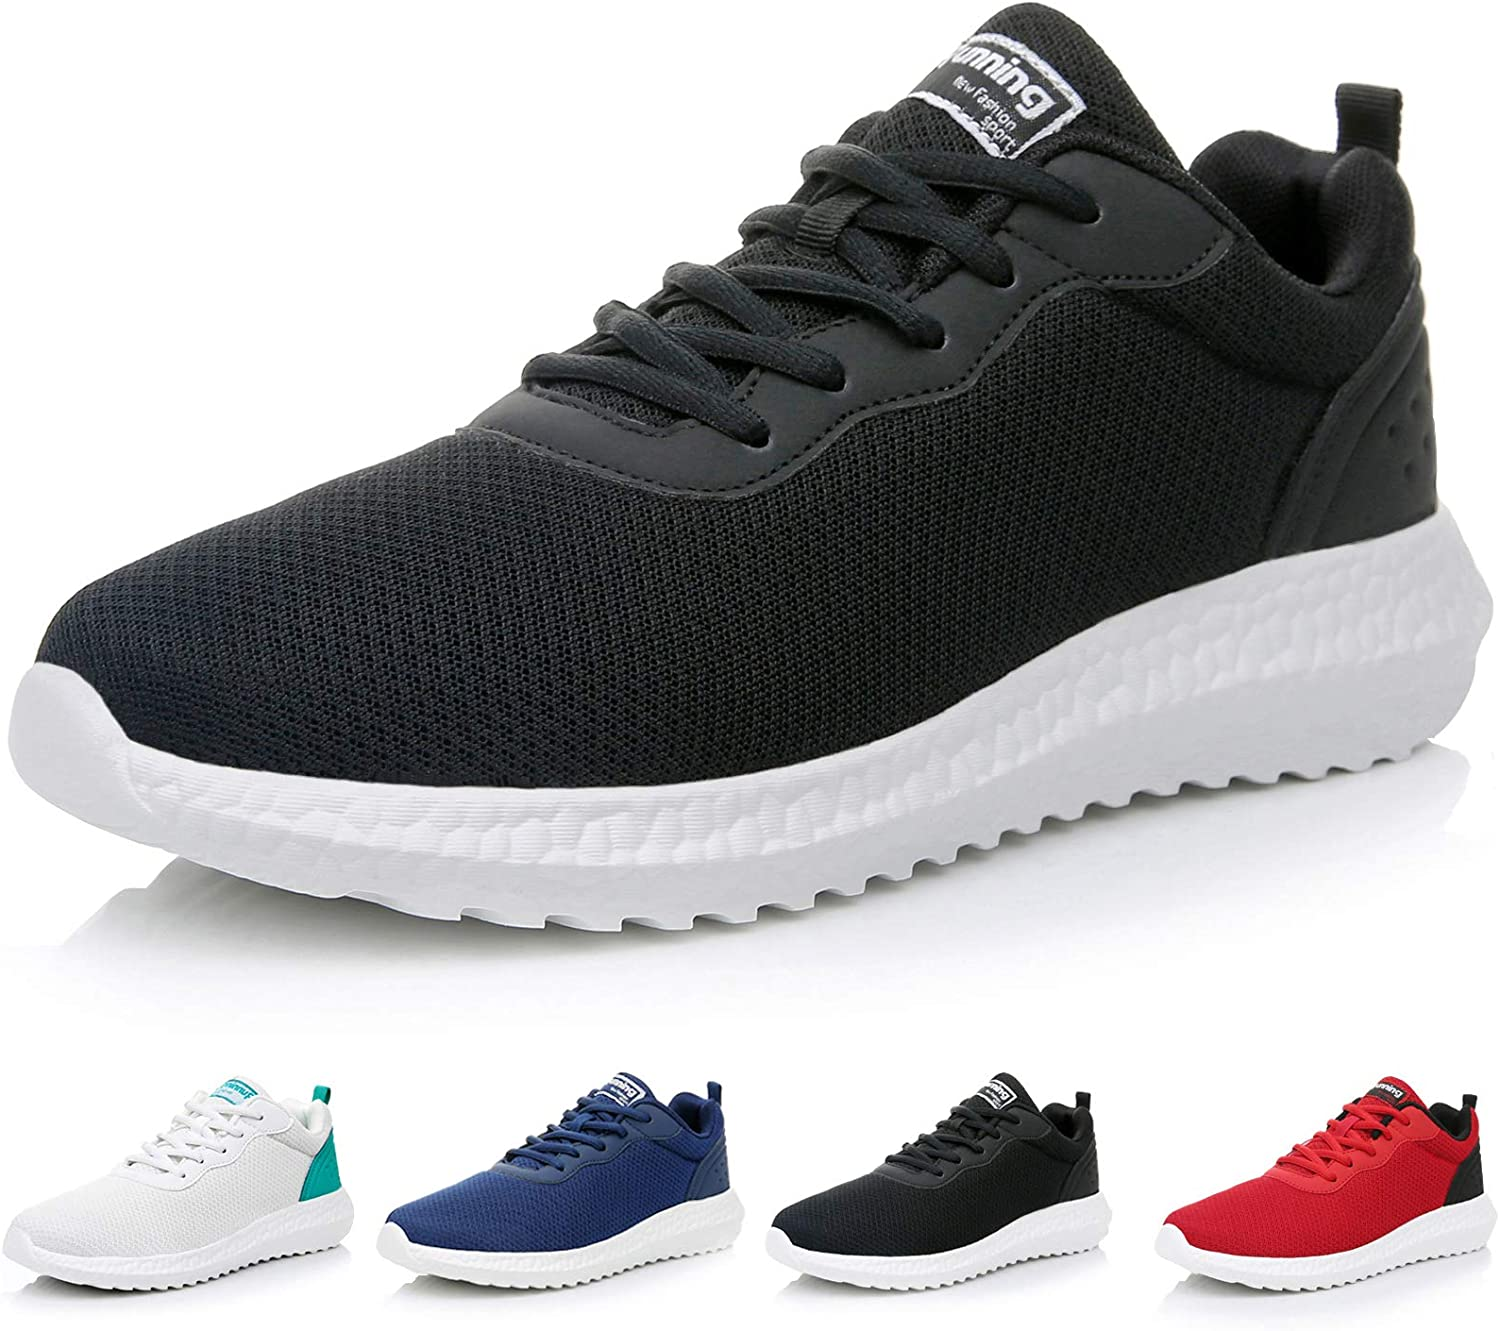 GOOBON Men s Lightweight Running Tennis Sneakers Non-Slip Breathable Walking Shoes Gym Jogging Fashion Sports Casual Athletic Shoes US7-12